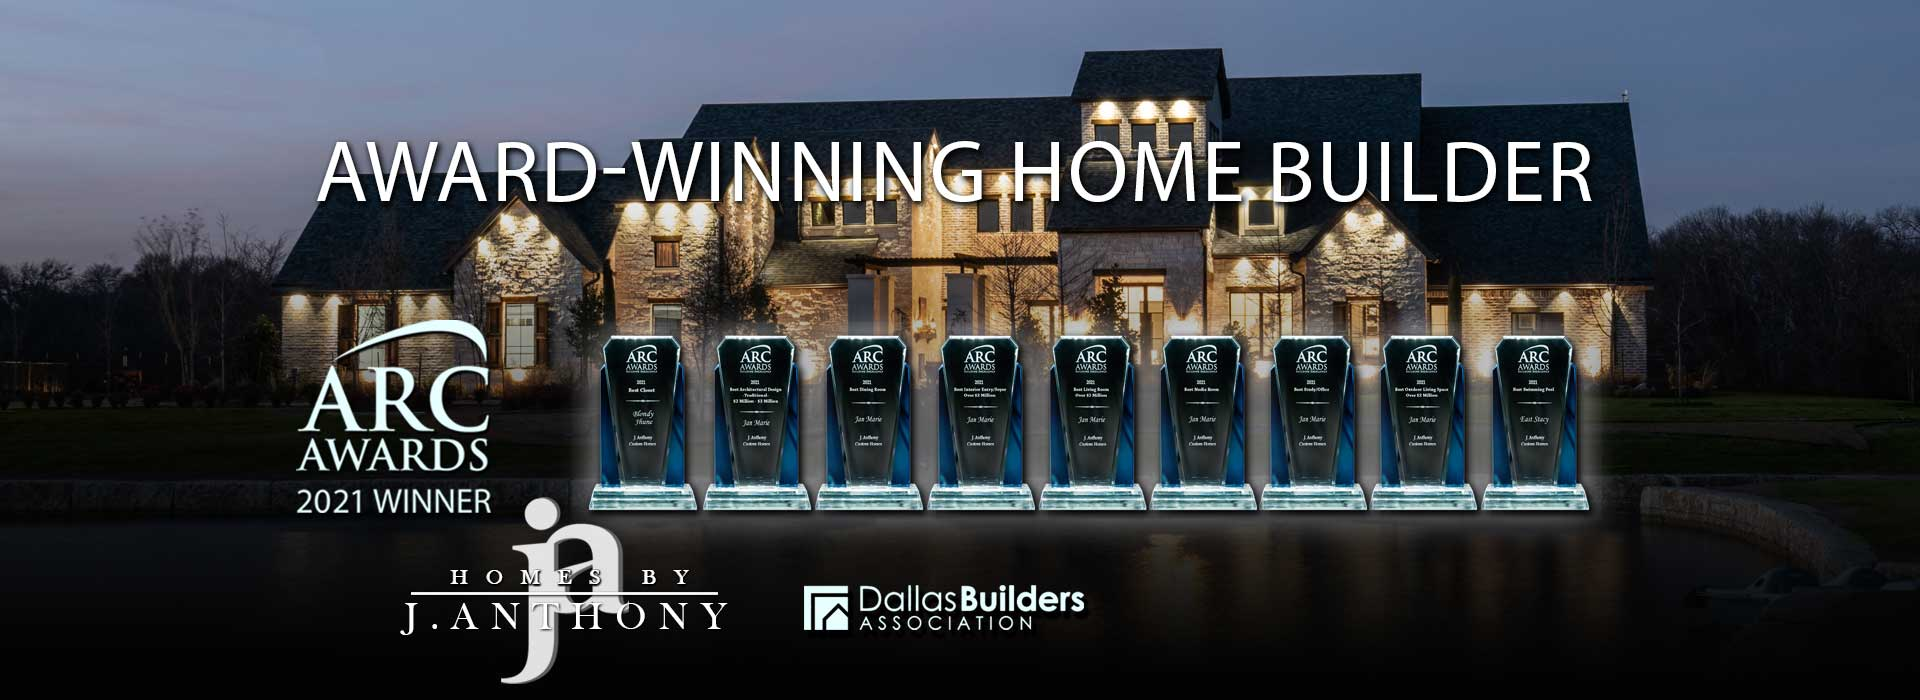 Homes By J. Anthony is 2021 Arc Awards Winner